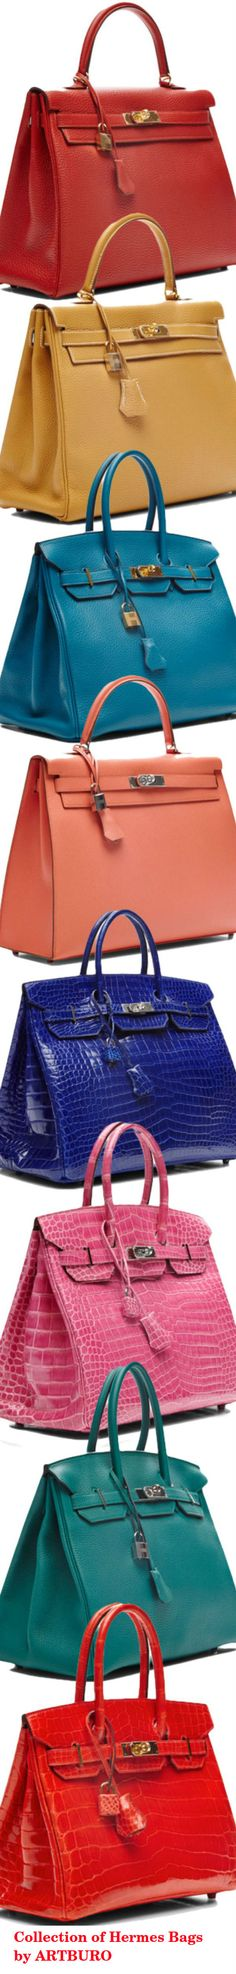 bag hermes - ARTBURO offers personolize hermes birkin bag and customized hermes ...